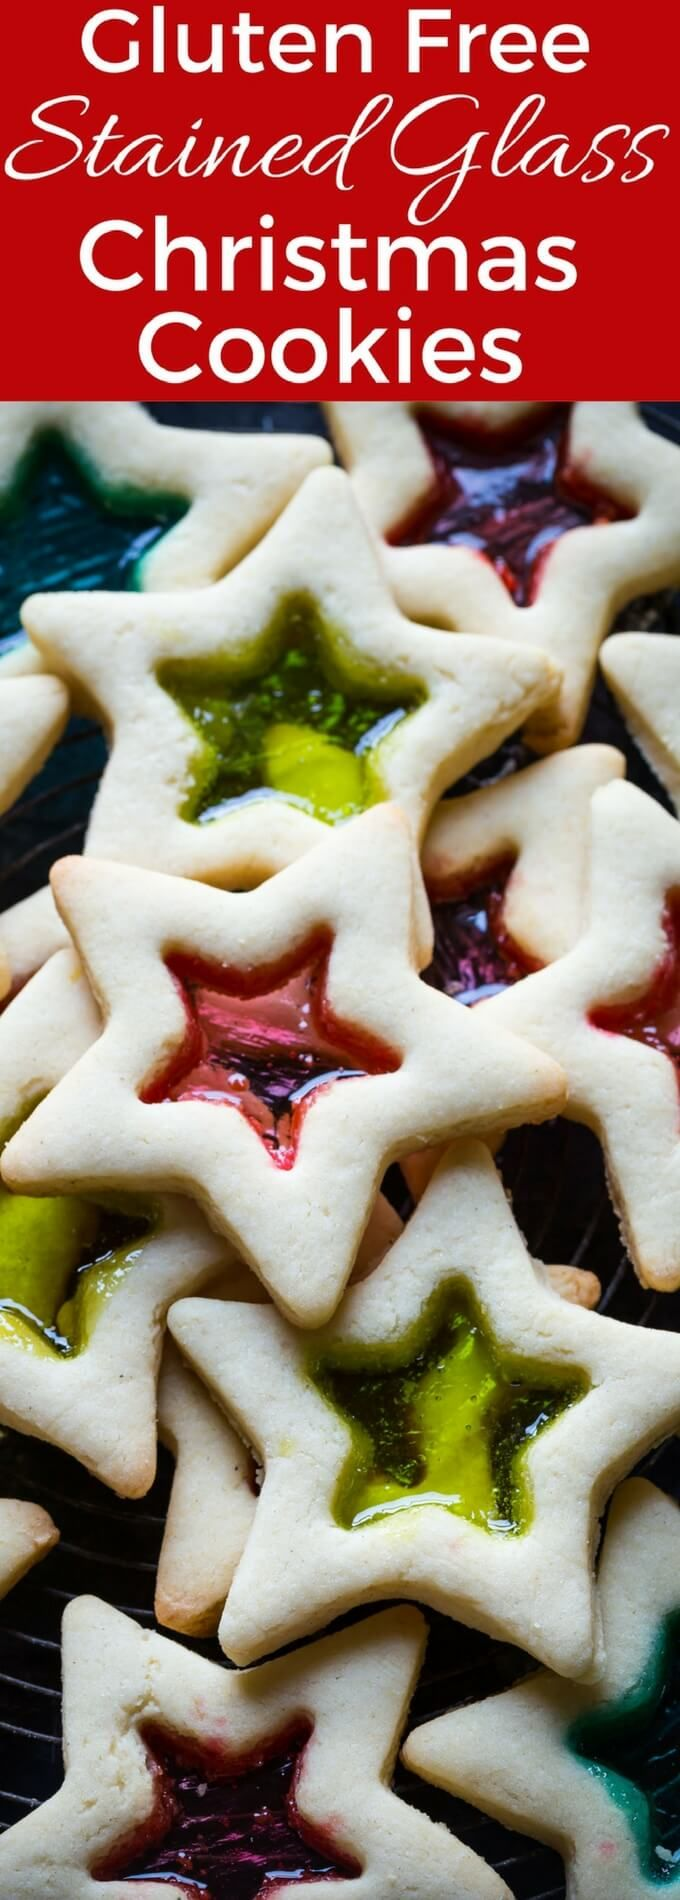 Beautiful Gluten Free Stained Glass Cookies for Christmas! You can can make these with your kids, they are SO easy!